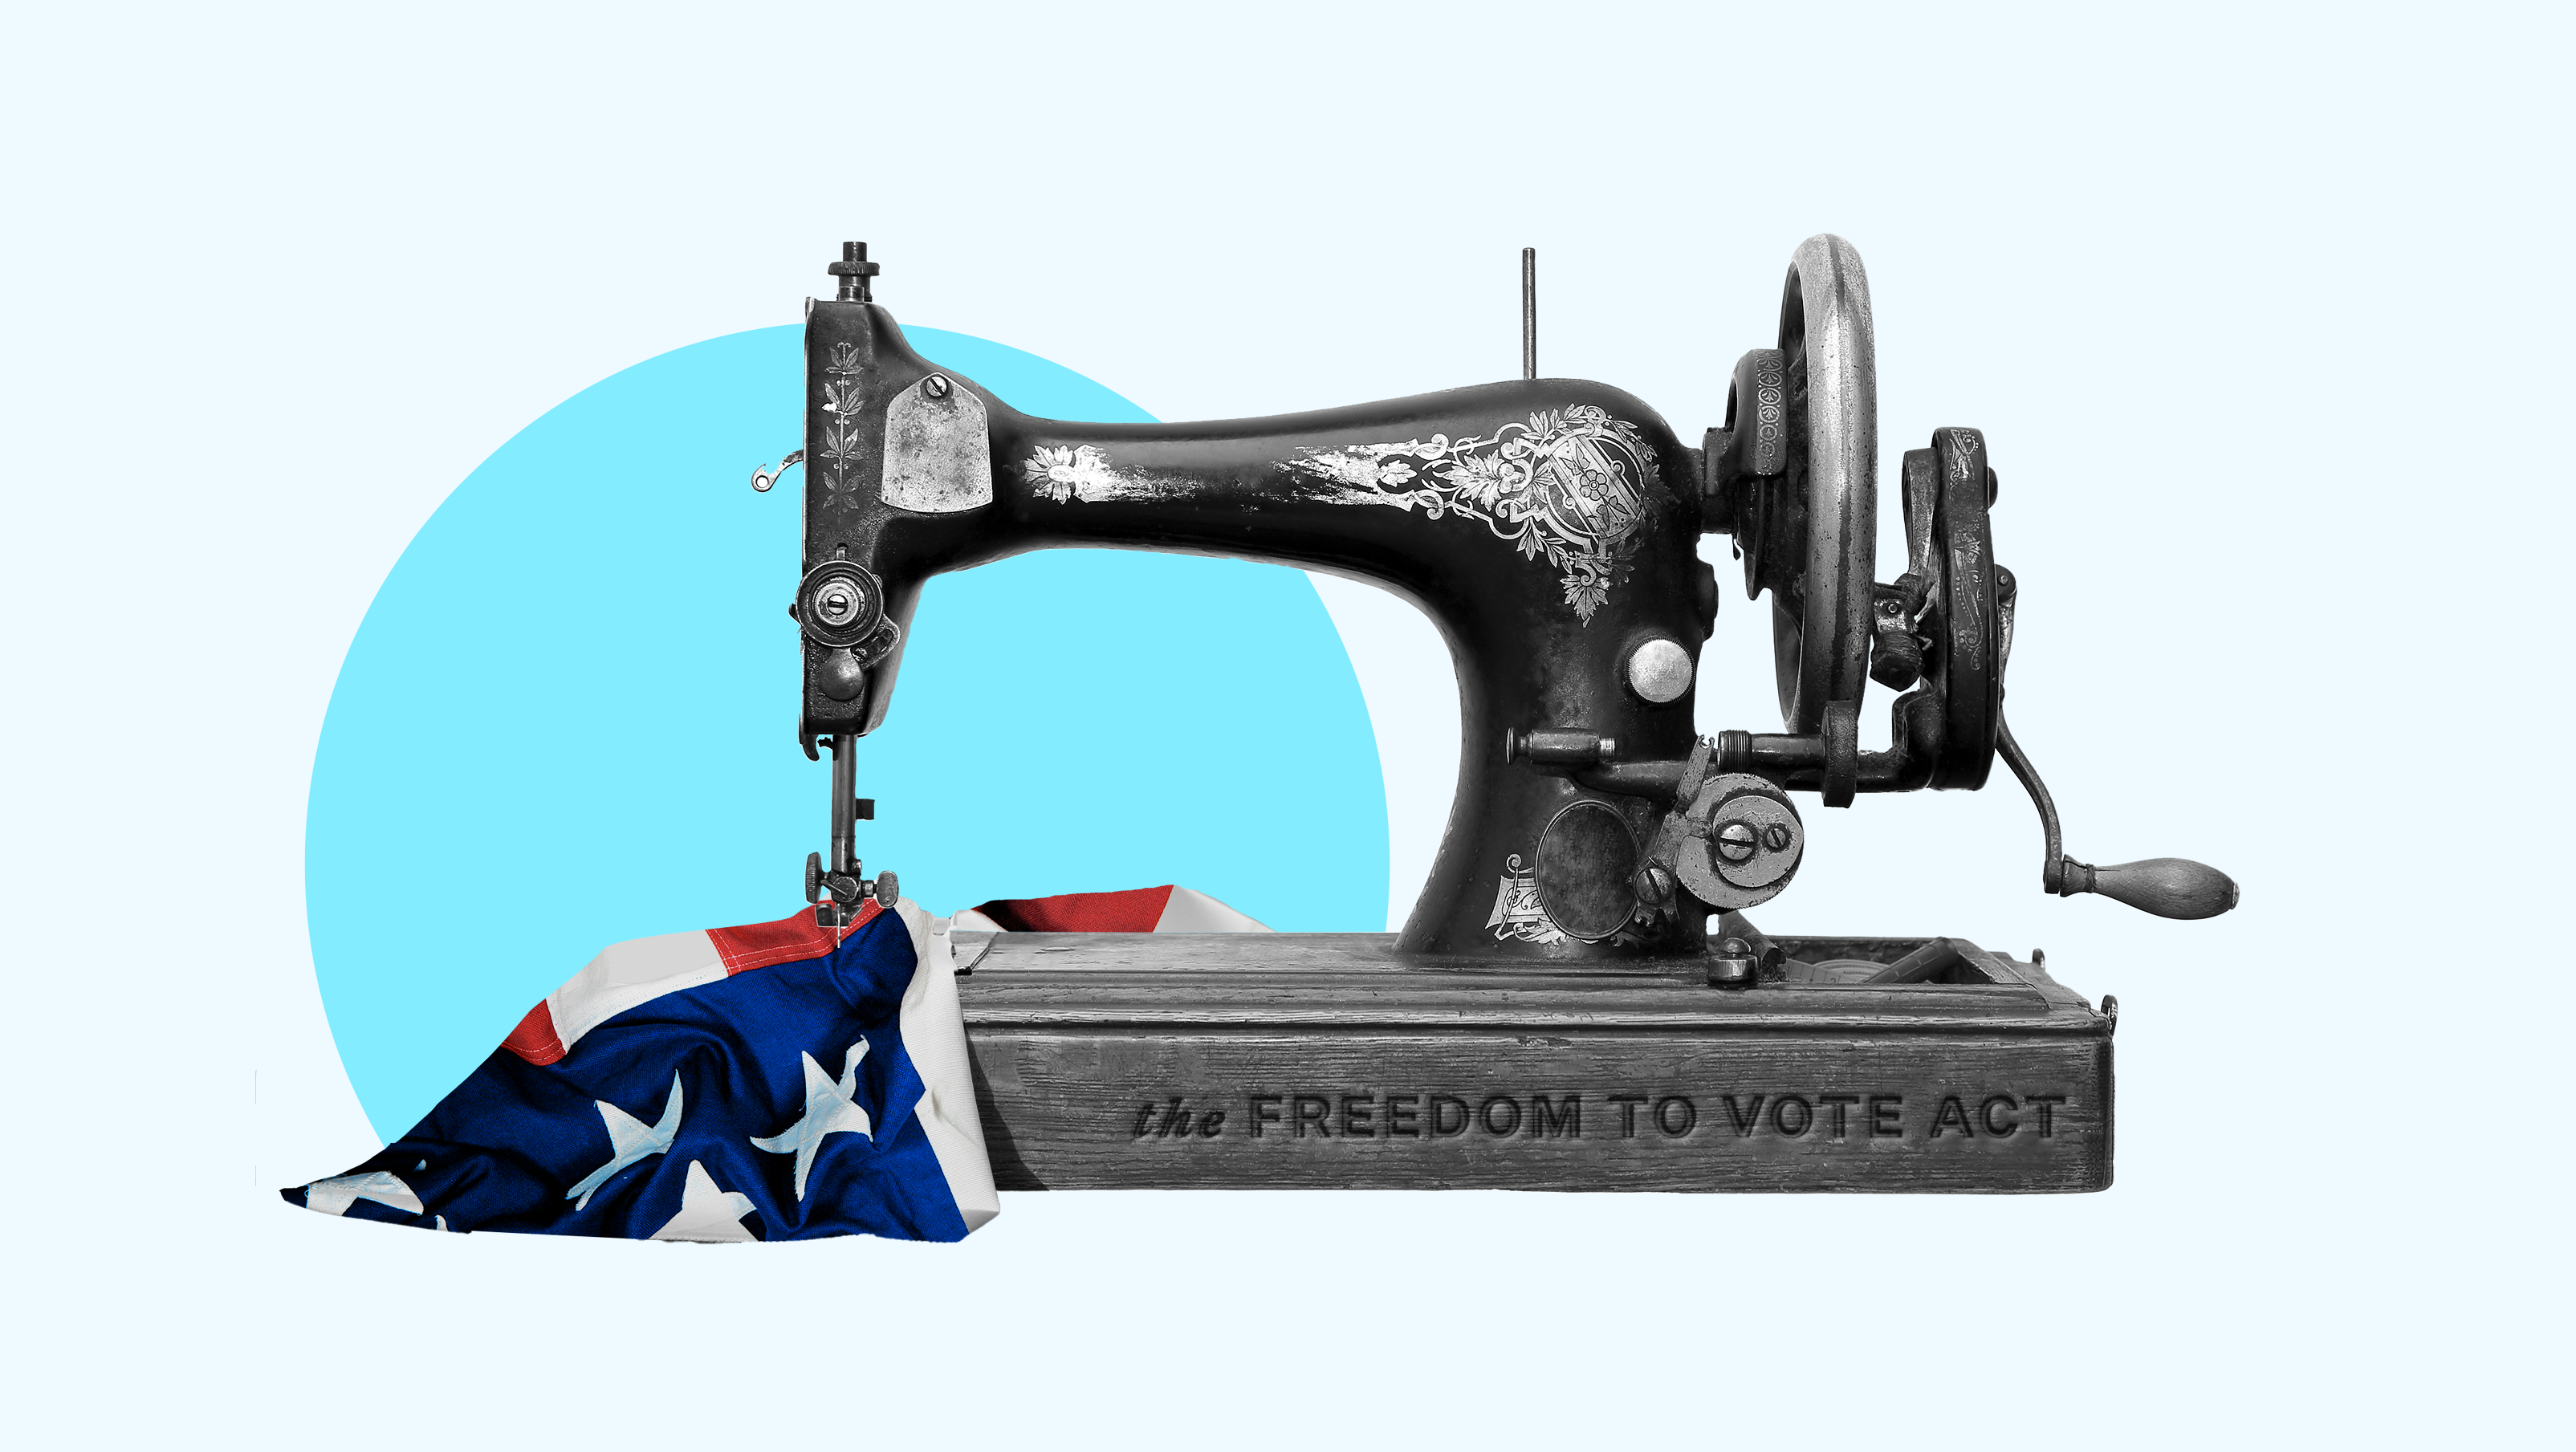 """A sewing machine that has the words """"FREEDOM TO VOTE ACT"""" etched into its base, mending an American flag"""